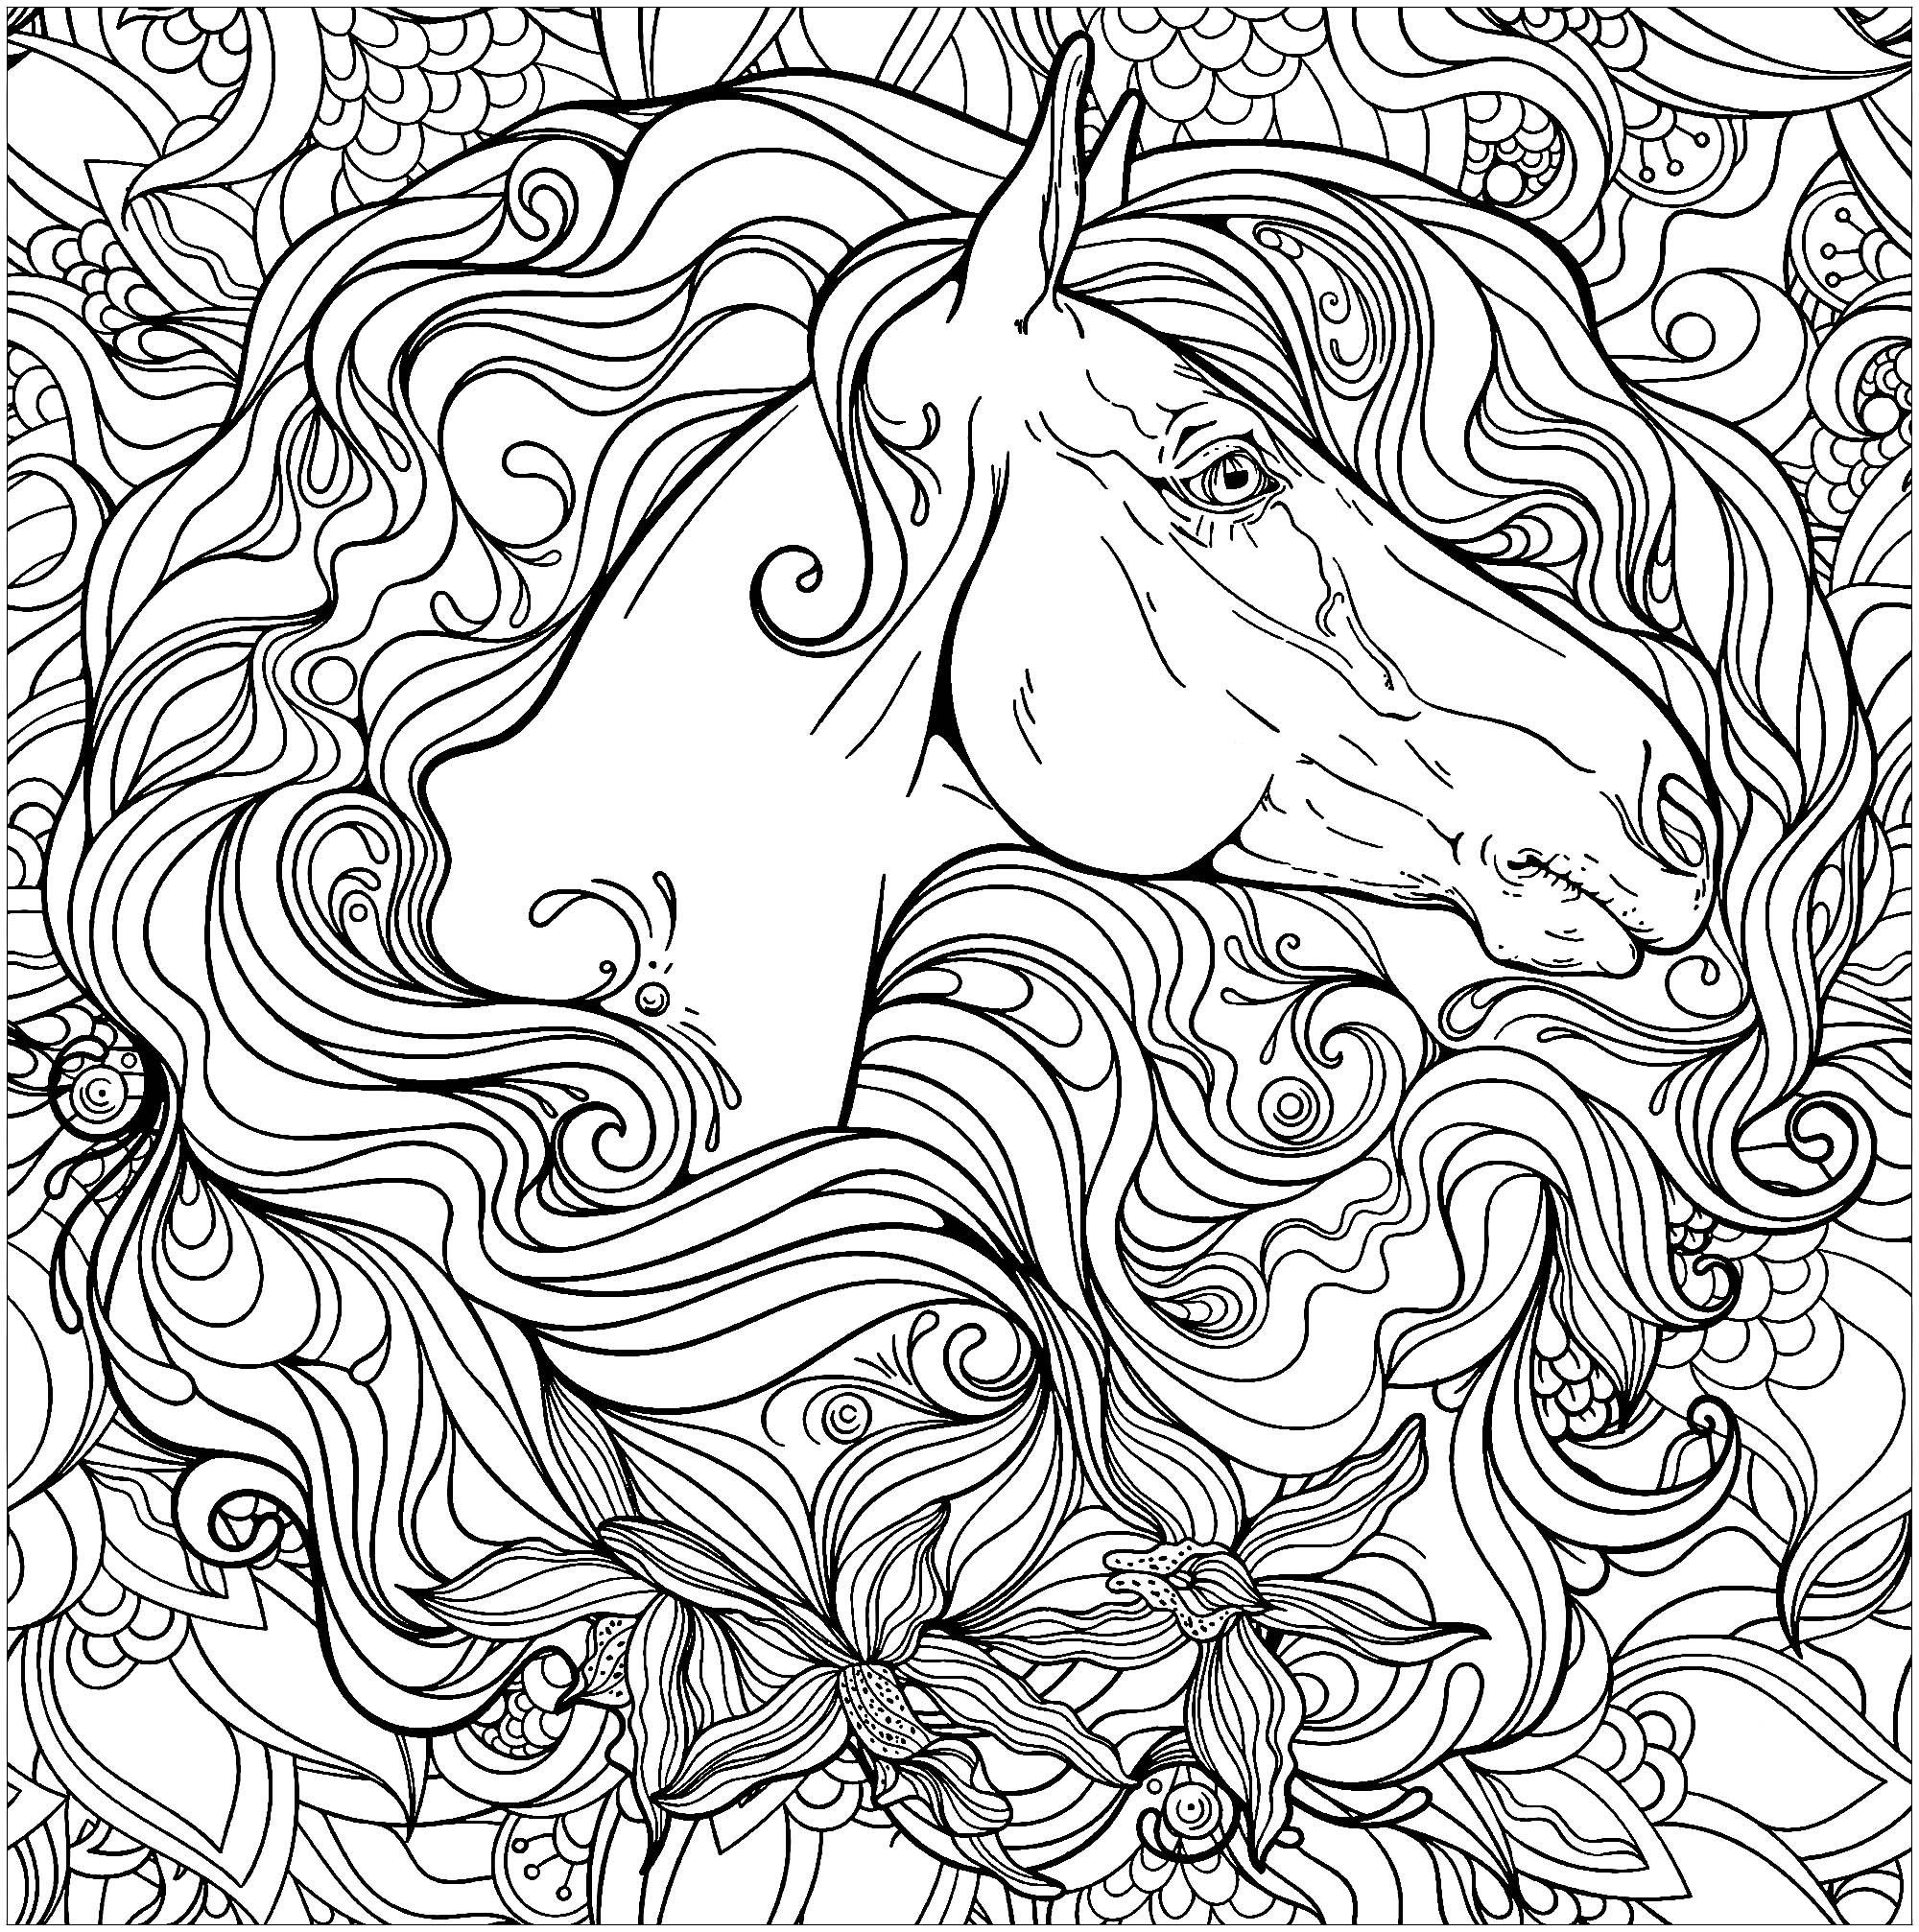 Horses Free To Color For Kids Horses Kids Coloring Pages